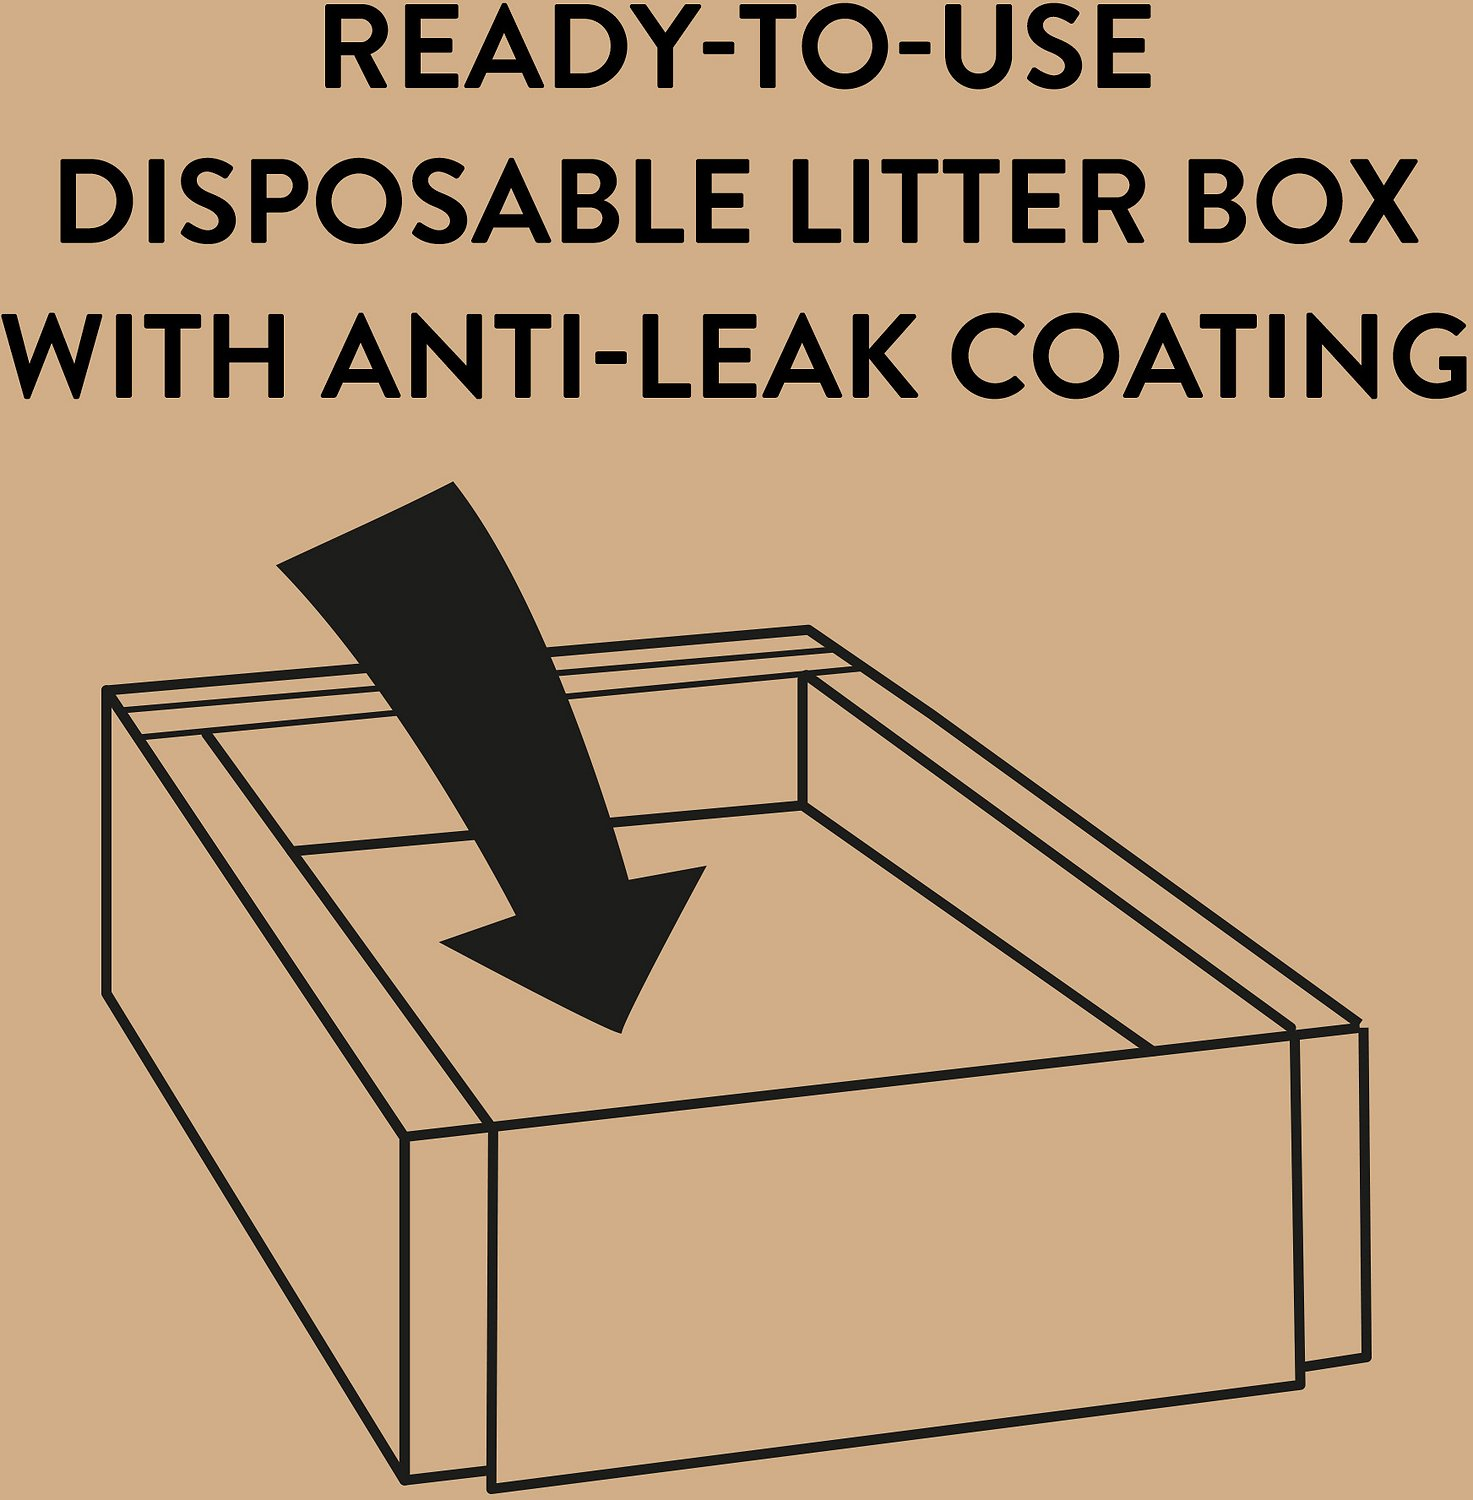 tidy cats direct disposable litter box with lightweight clumping multiple cat litter 13 5 lb. Black Bedroom Furniture Sets. Home Design Ideas